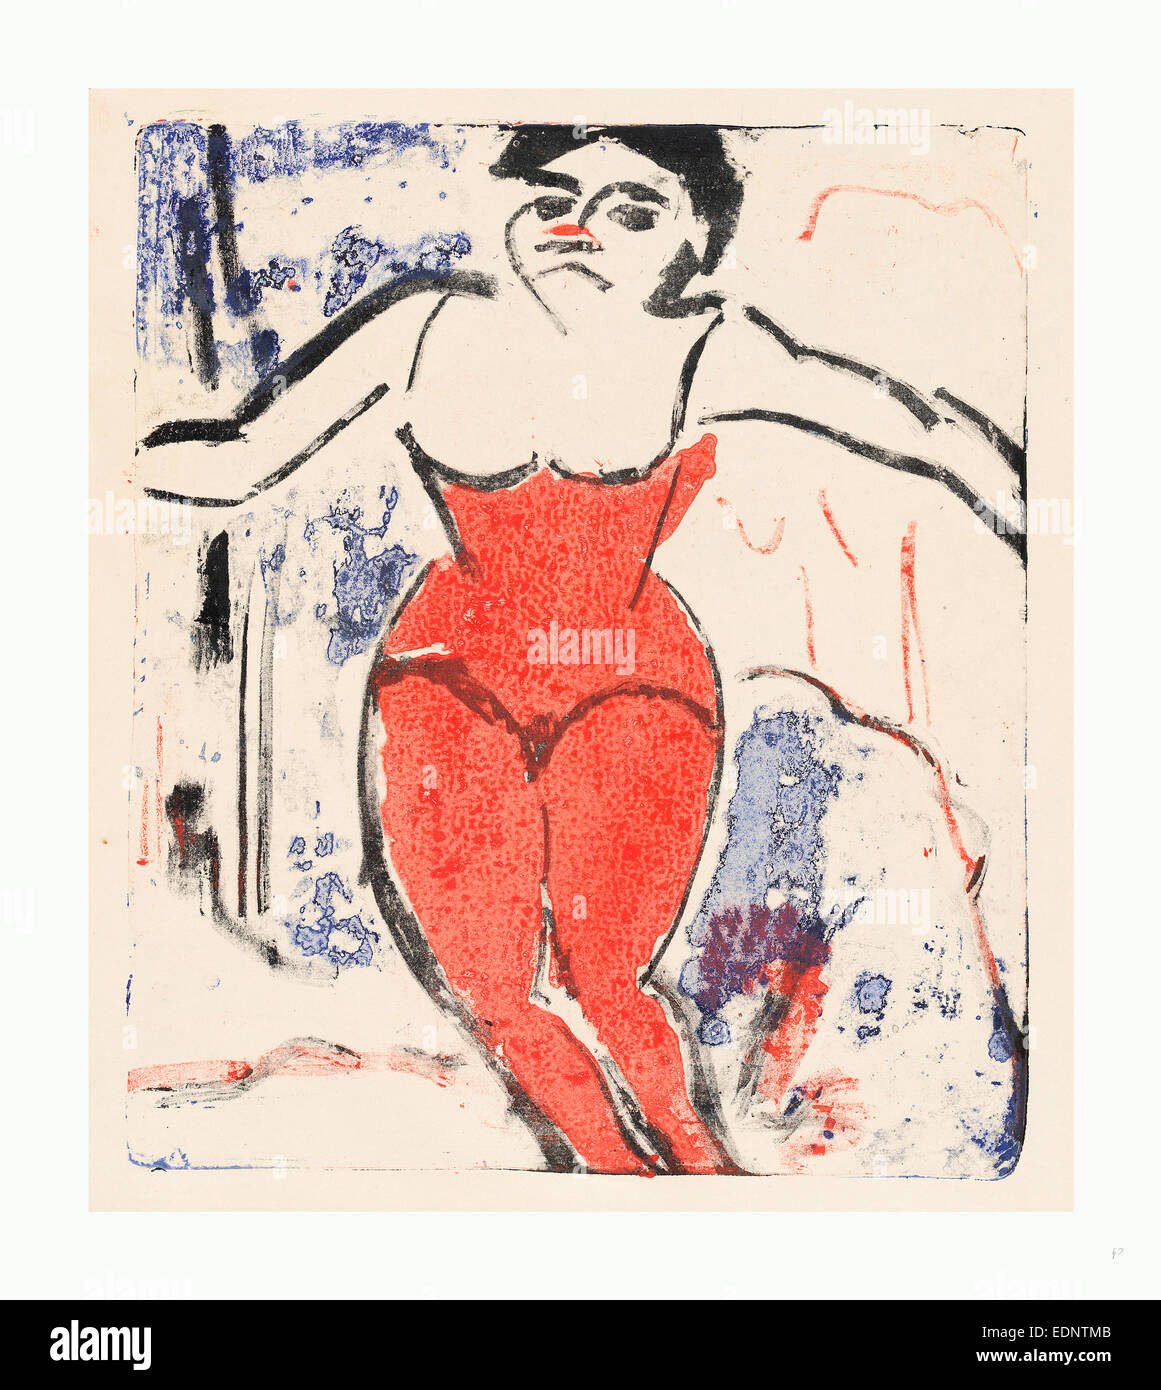 Ernst Ludwig Kirchner, Performer Bowing (Beifallheischende Artistin), German, 1880 - 1938, 1909, lithograph in red, - Stock Image